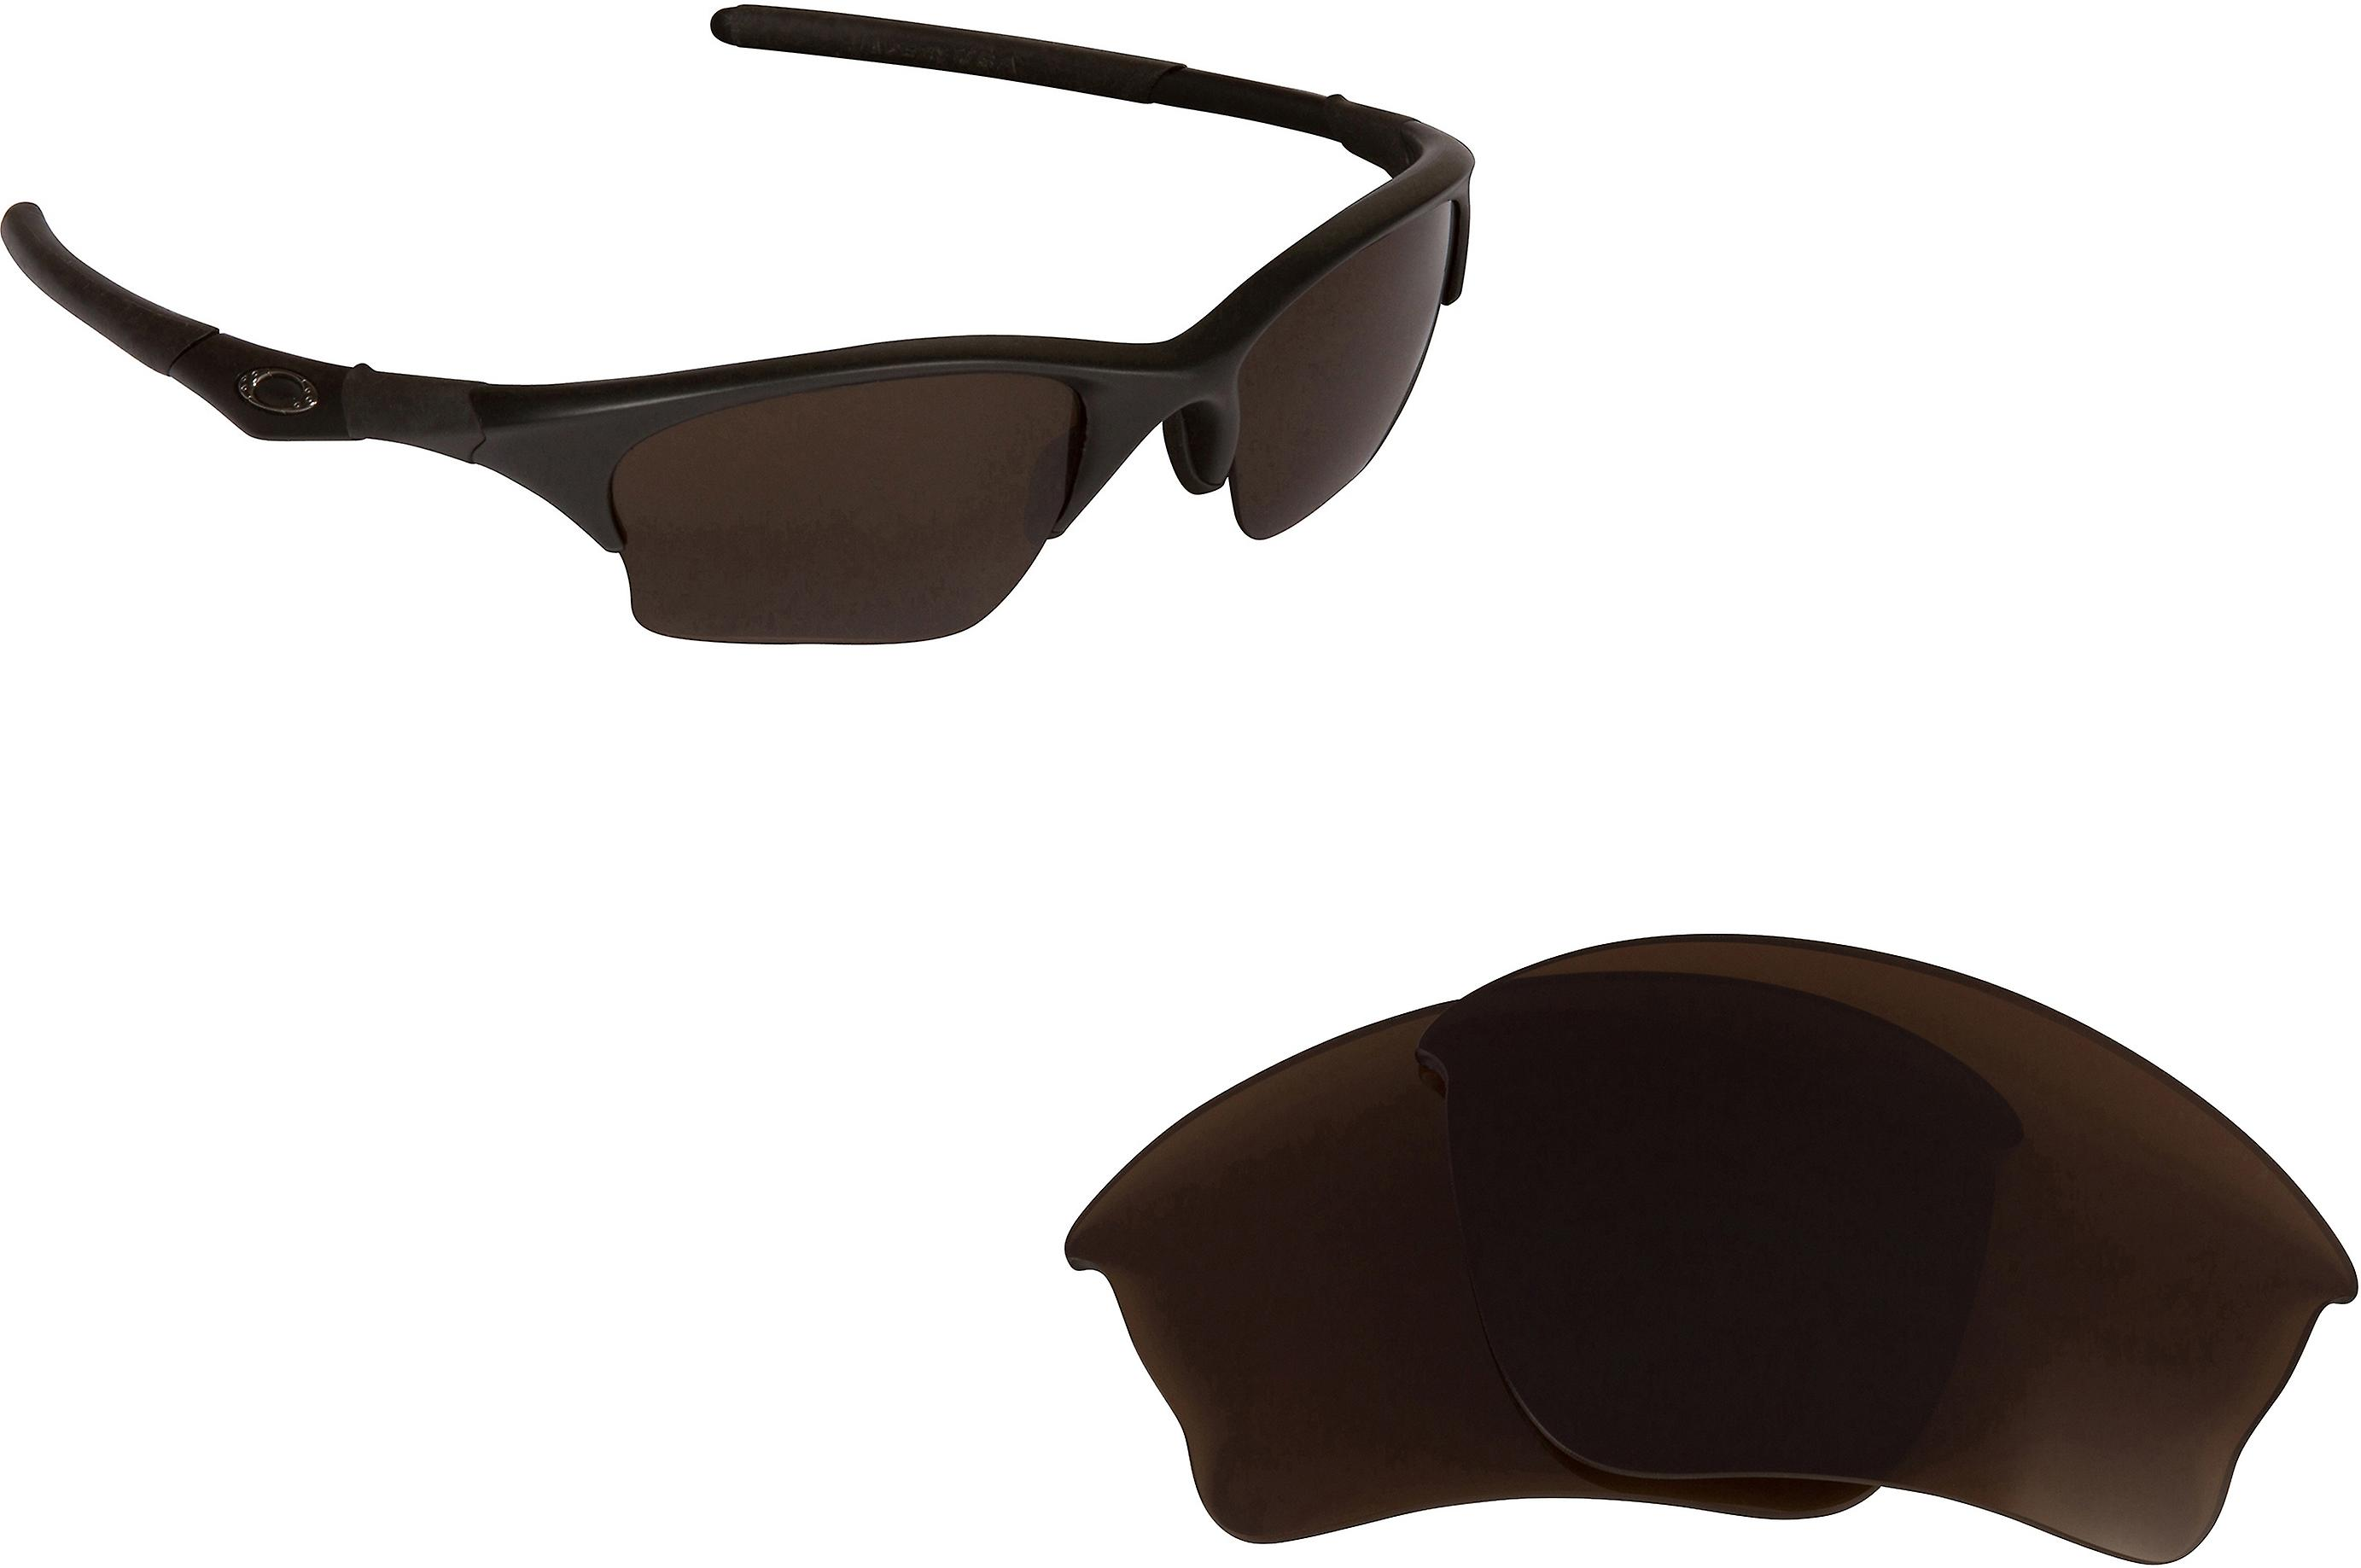 b1a51fee0 Half Jacket XLJ Replacement Lenses Bronze Brown & Ruby Red by SEEK fits  OAKLEY